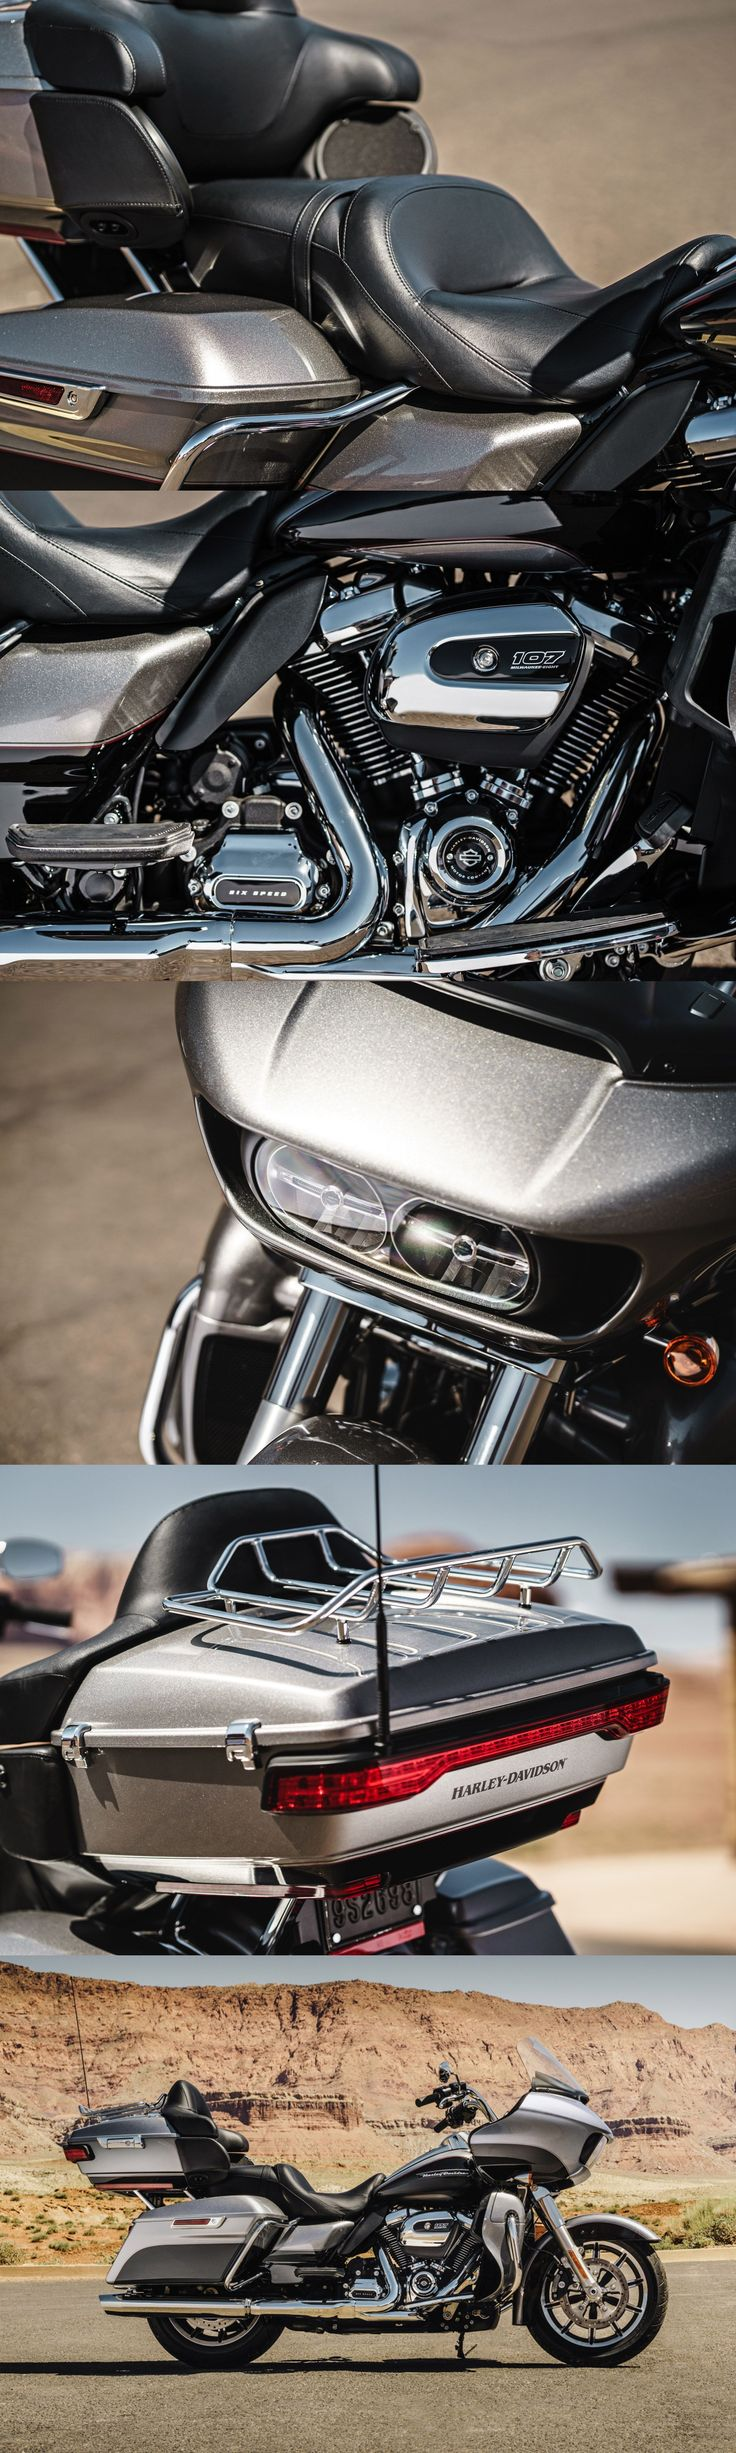 Times have never been better for the riders who put on the most miles. Get behind the frame-mounted shark nose fairing on the Road Glide Ultra and you'll know why. | 2017 Harley-Davidson Road Glide Ultra #motosharleydavidsonchoppers #harleydavidsonstreetglide2017 #harleyddavidsonstreet #harleydavidsonroadglide2017